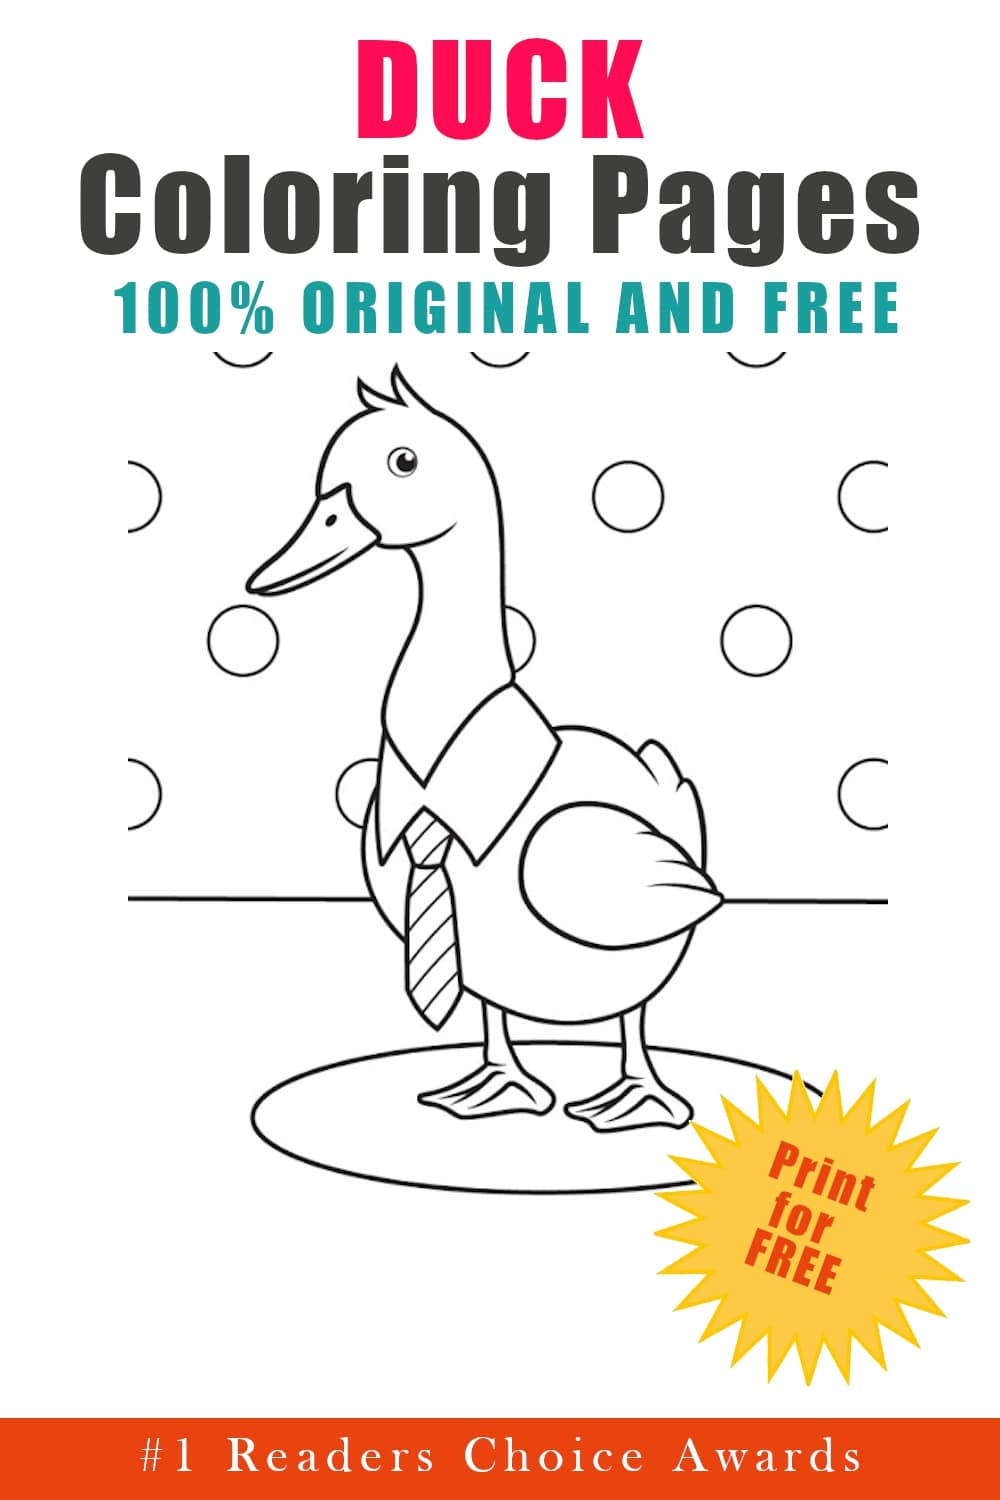 original and free duck coloring pages